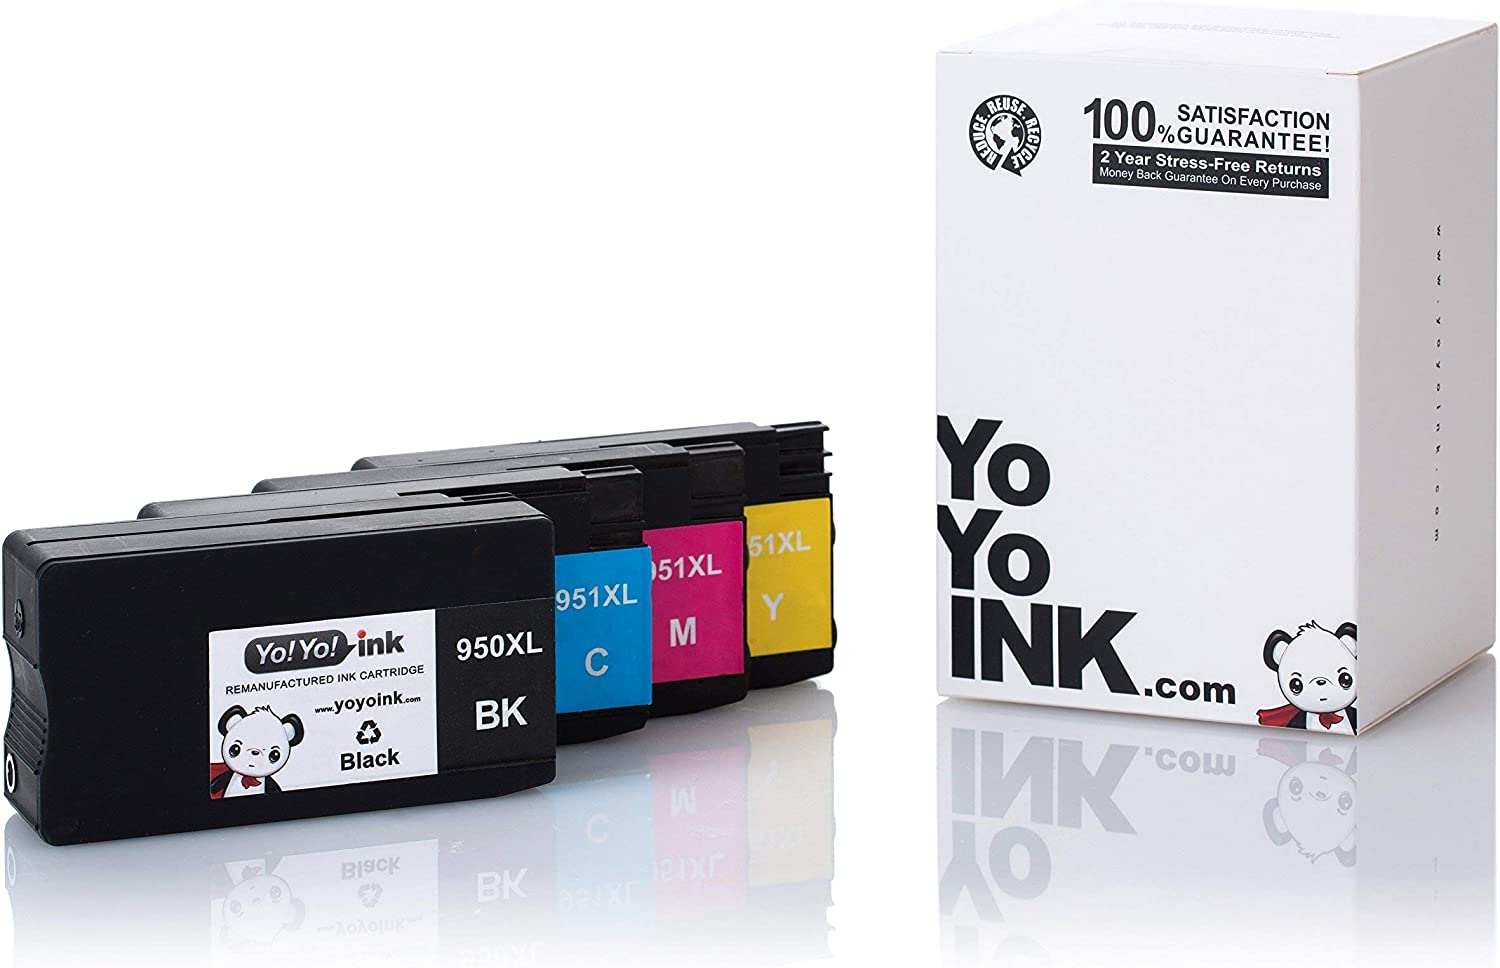 YoYoInk Remanufactured Ink Cartridge Replacement for HP 950XL 951XL 950 951 XL (1 Black, 1 Cyan, 1 Magenta, 1 Yellow; 4 Pack)